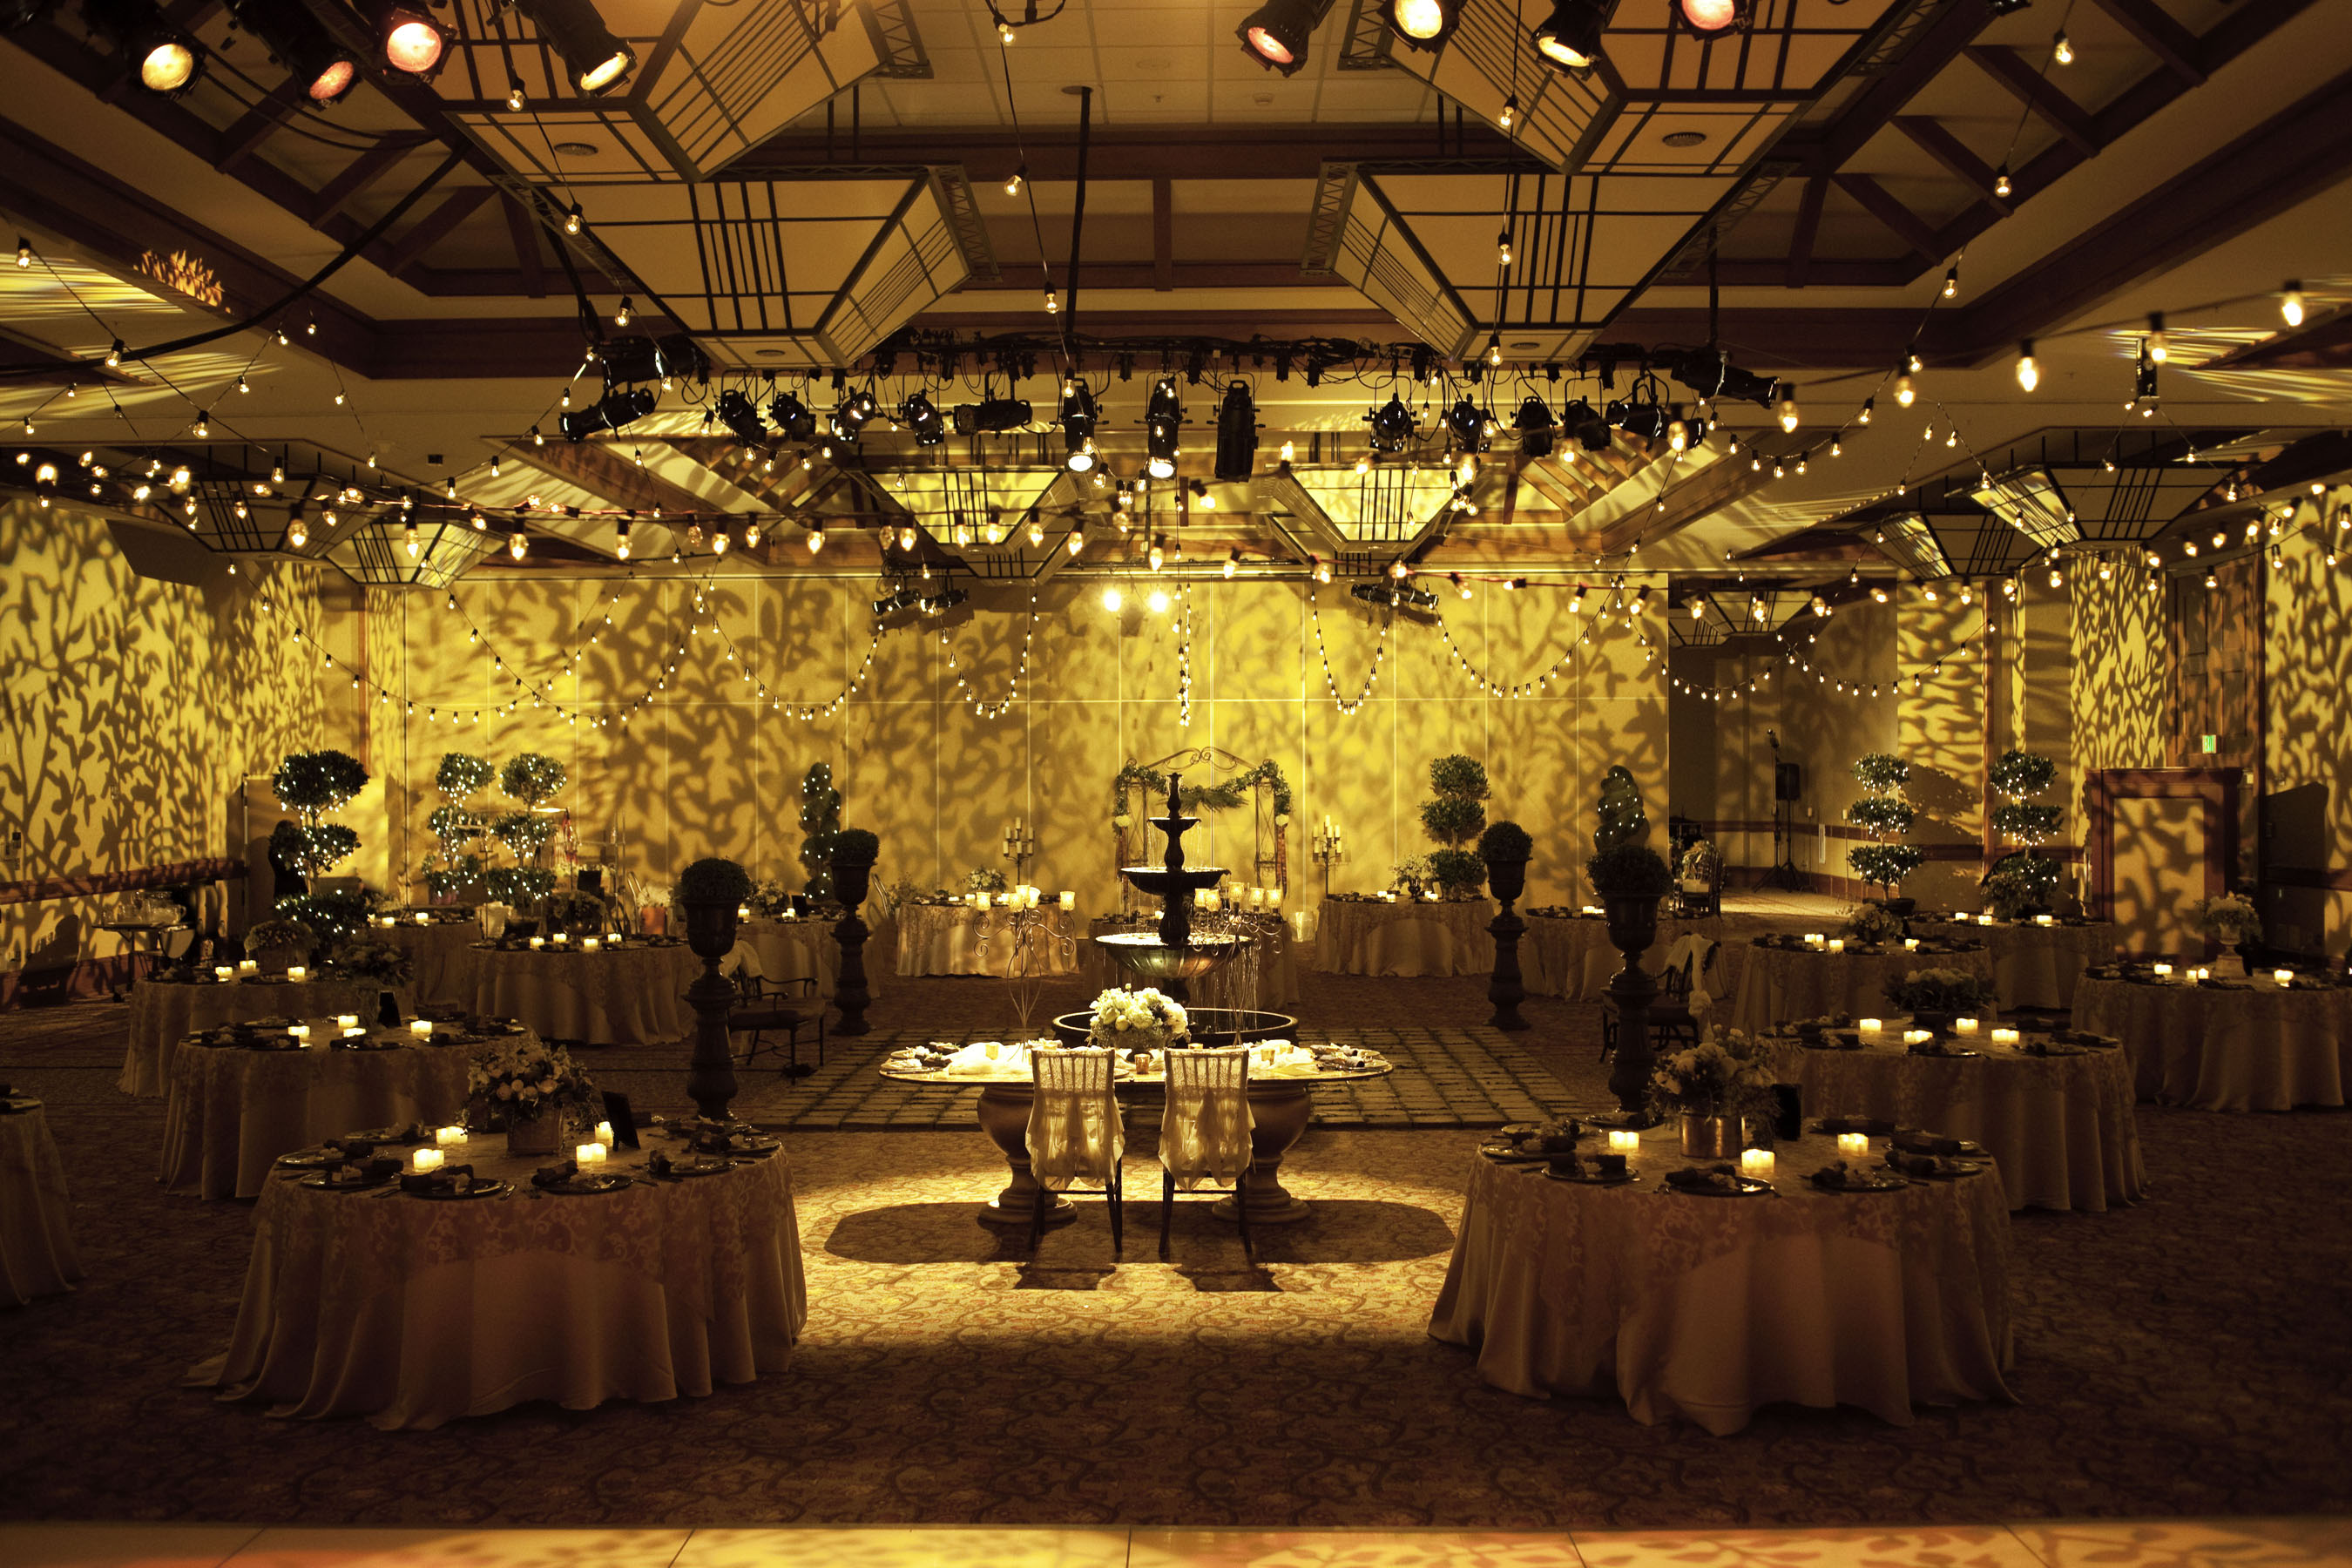 extravagant wedding decor